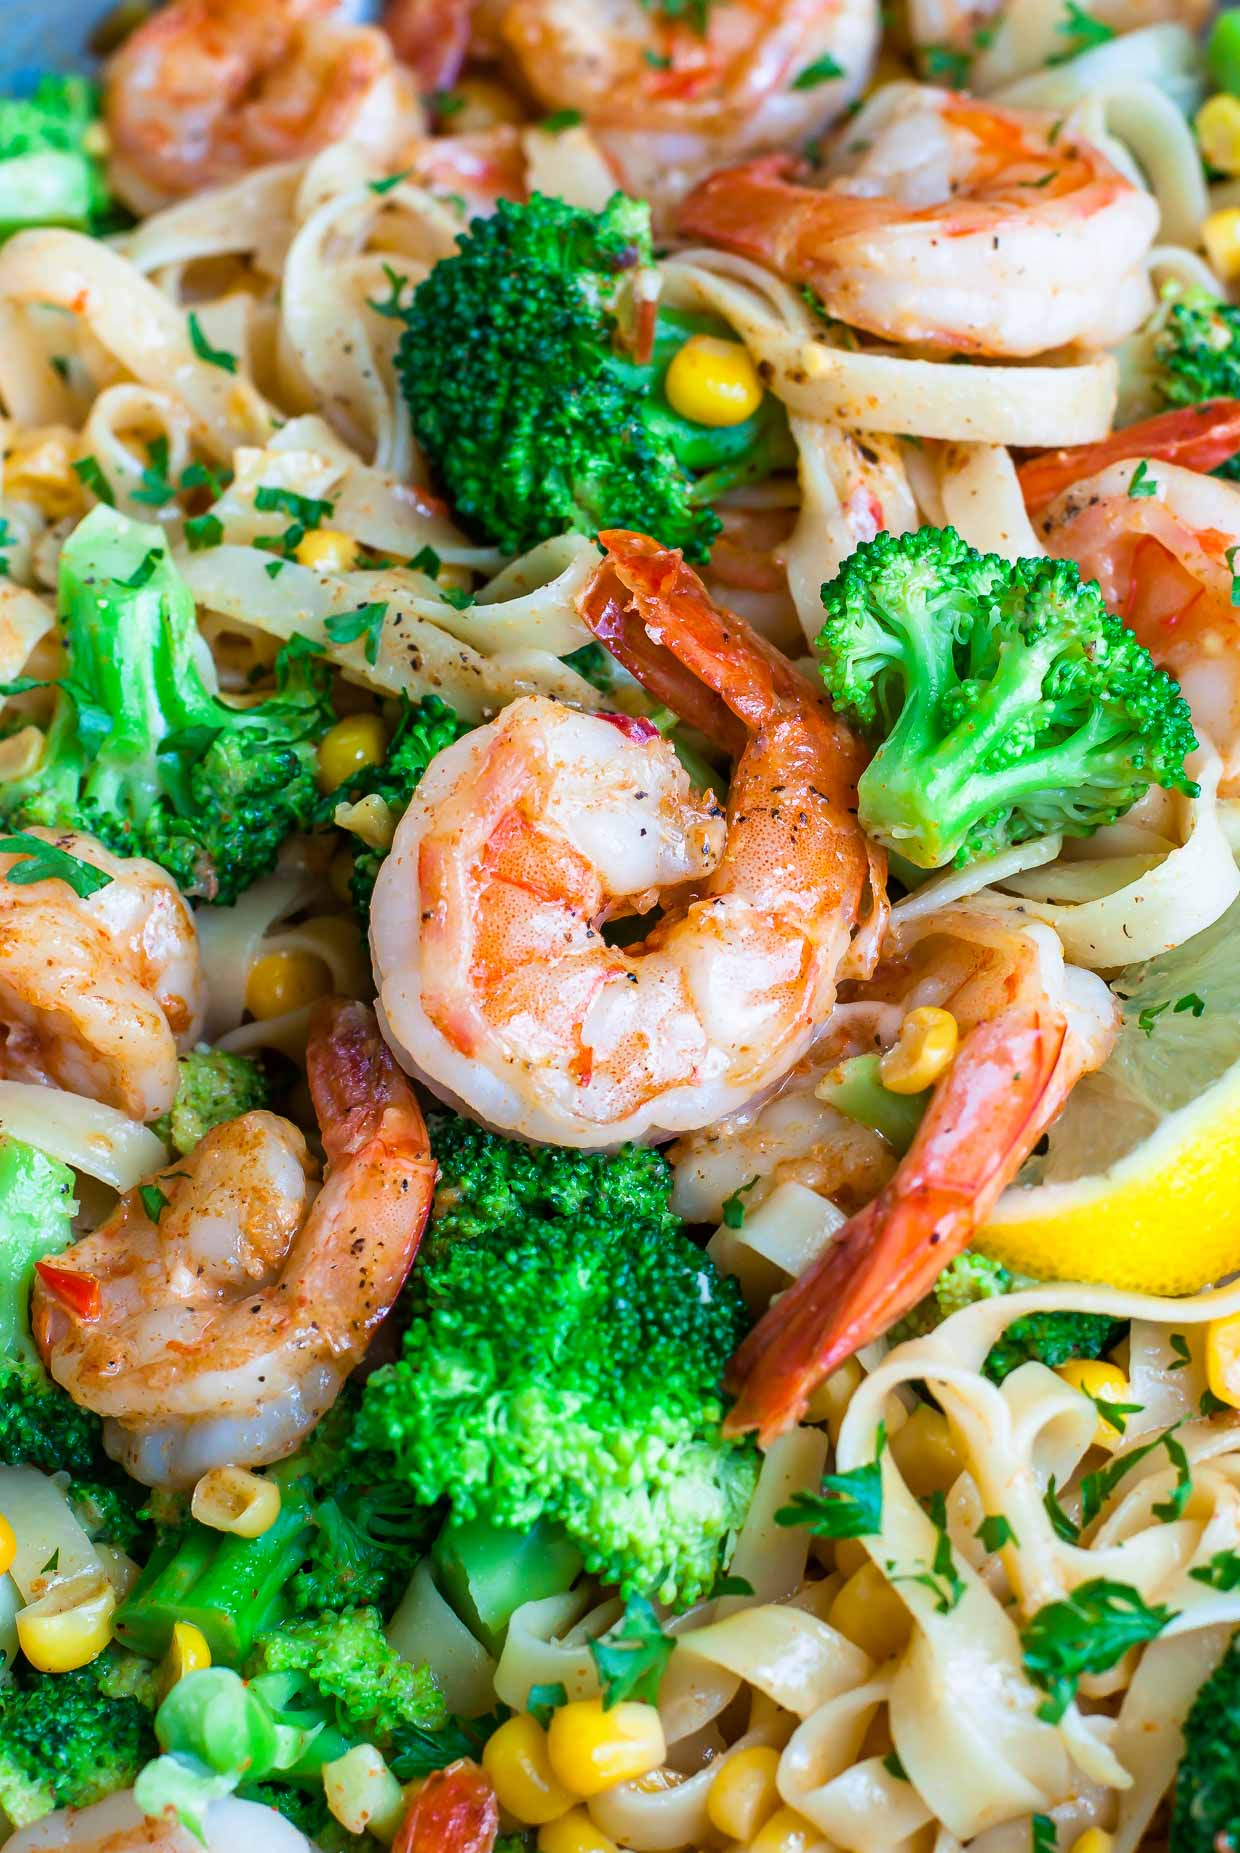 Cajun Shrimp Pasta tossed in a zesty lemon cream sauce with lots of veggies: this crazy colorful pasta dish is fast and flavorful!